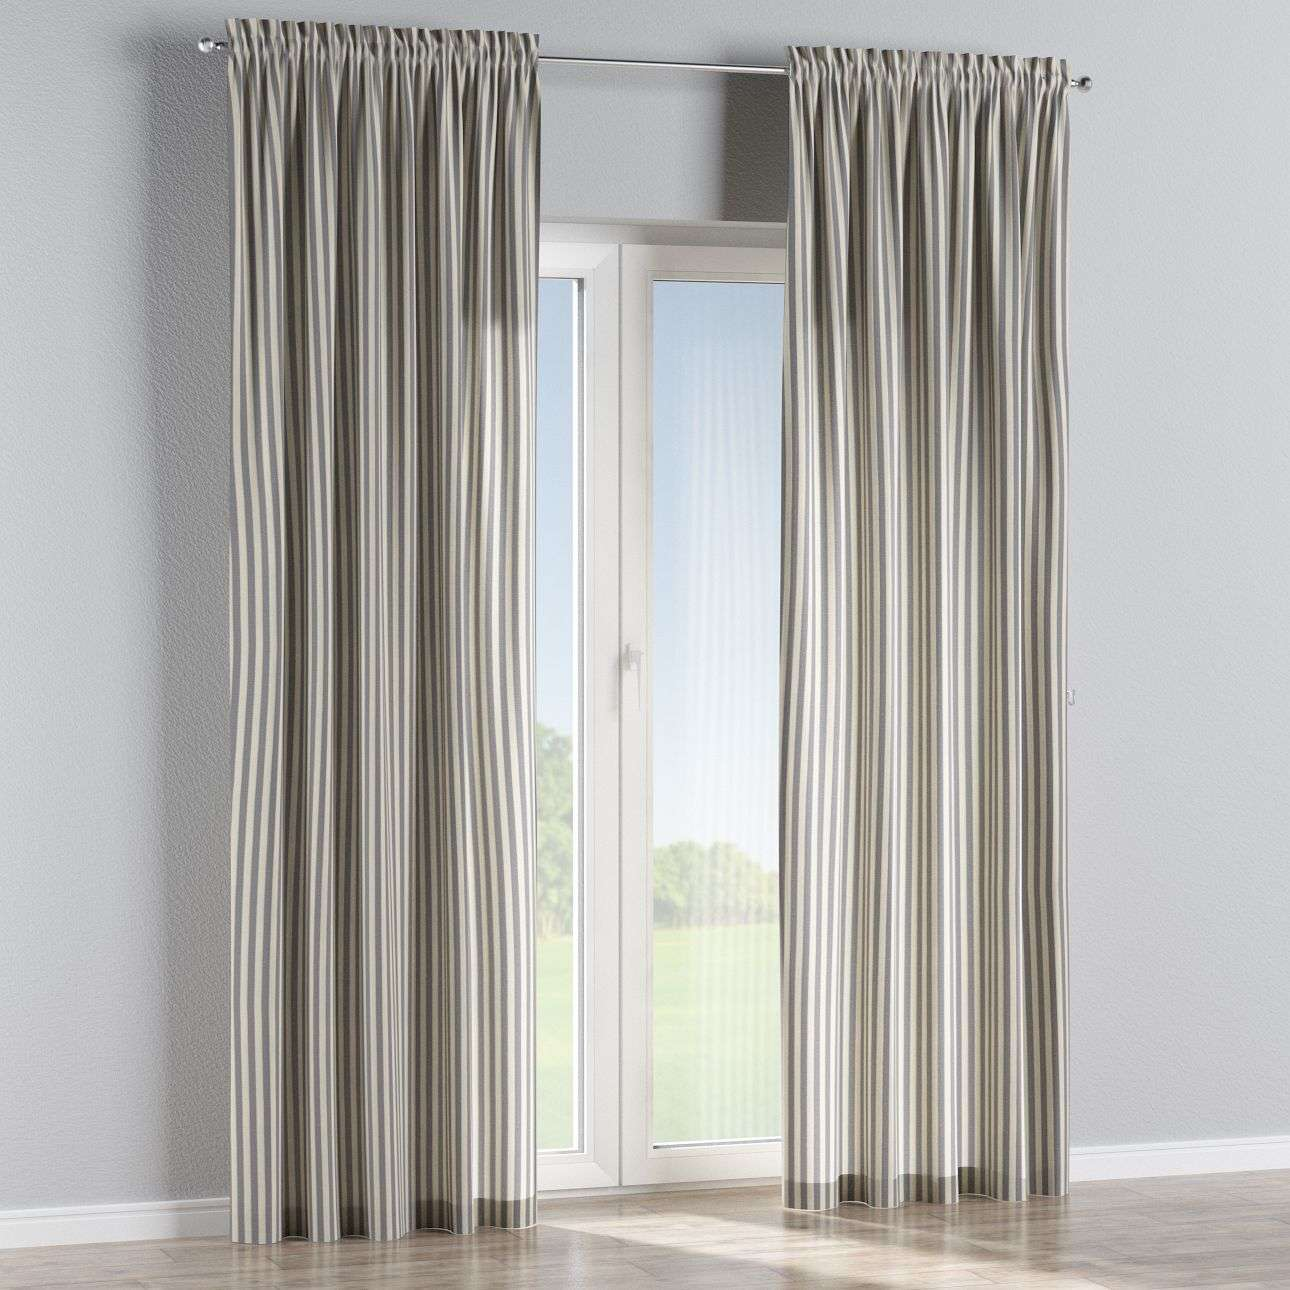 Slot and frill curtains in collection Quadro, fabric: 136-02